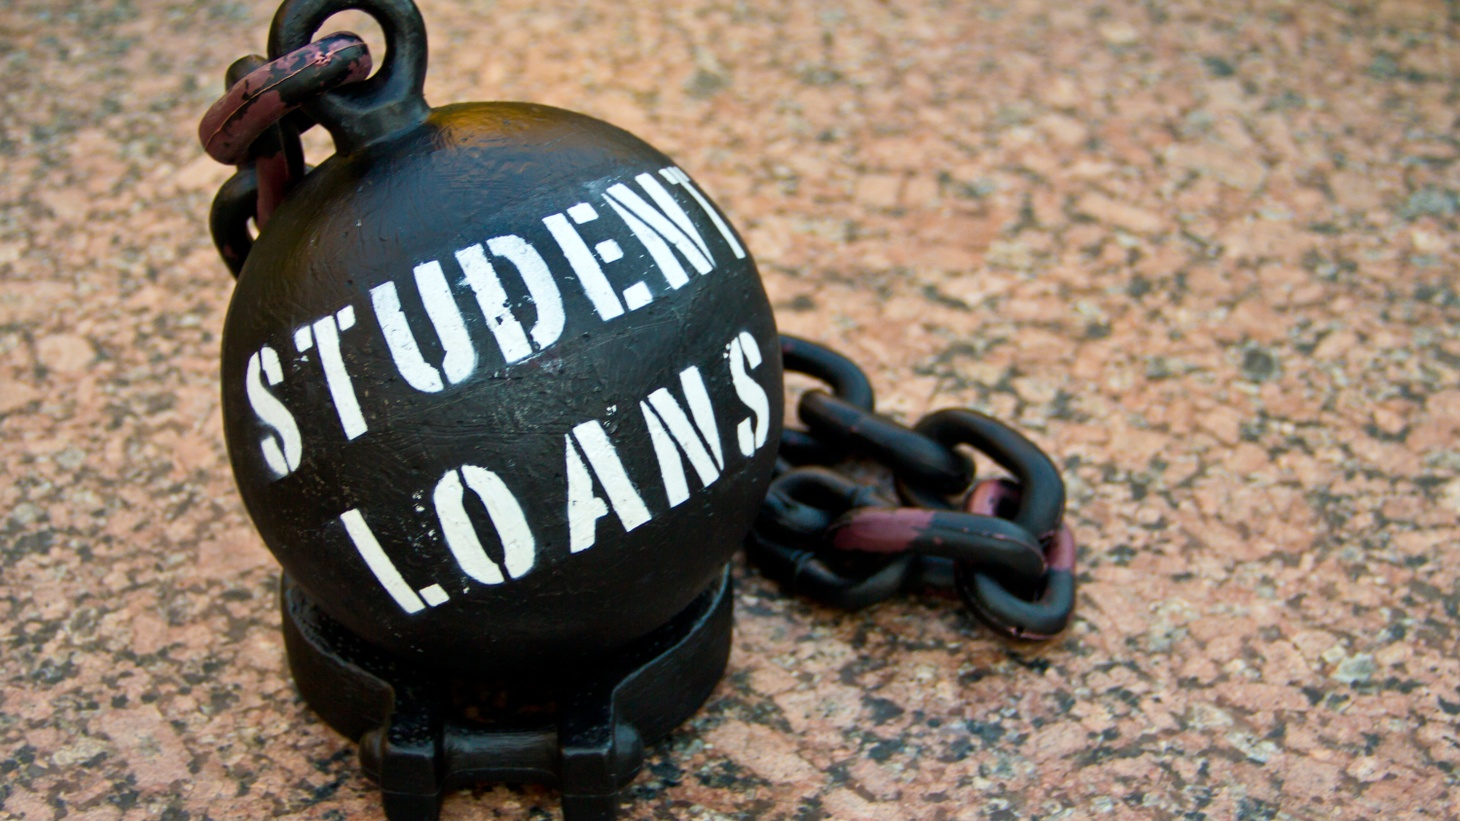 The sticker price for most private colleges these days is north of $60,000. That's leaving millions of Americans struggling to pay back school loans. So much that some of them are now refusing to pay back their student debt. But is that OK? How did ignoring debt turn into a moral stand? 